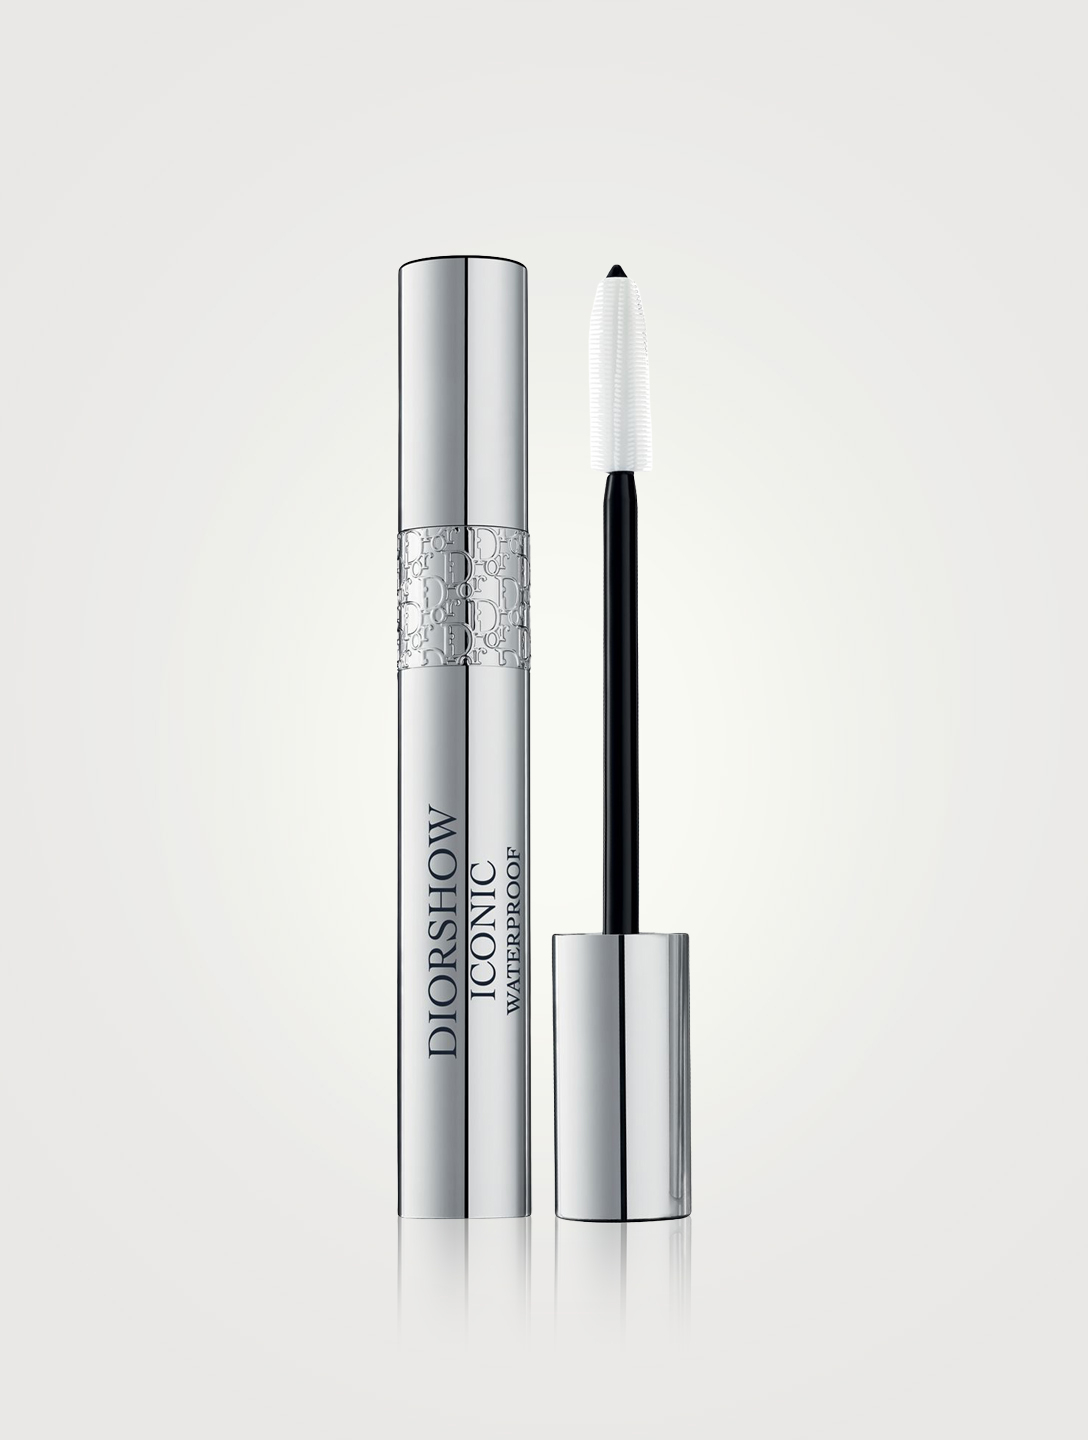 DIOR Diorshow Iconic Mascara – Waterproof Beauty Black